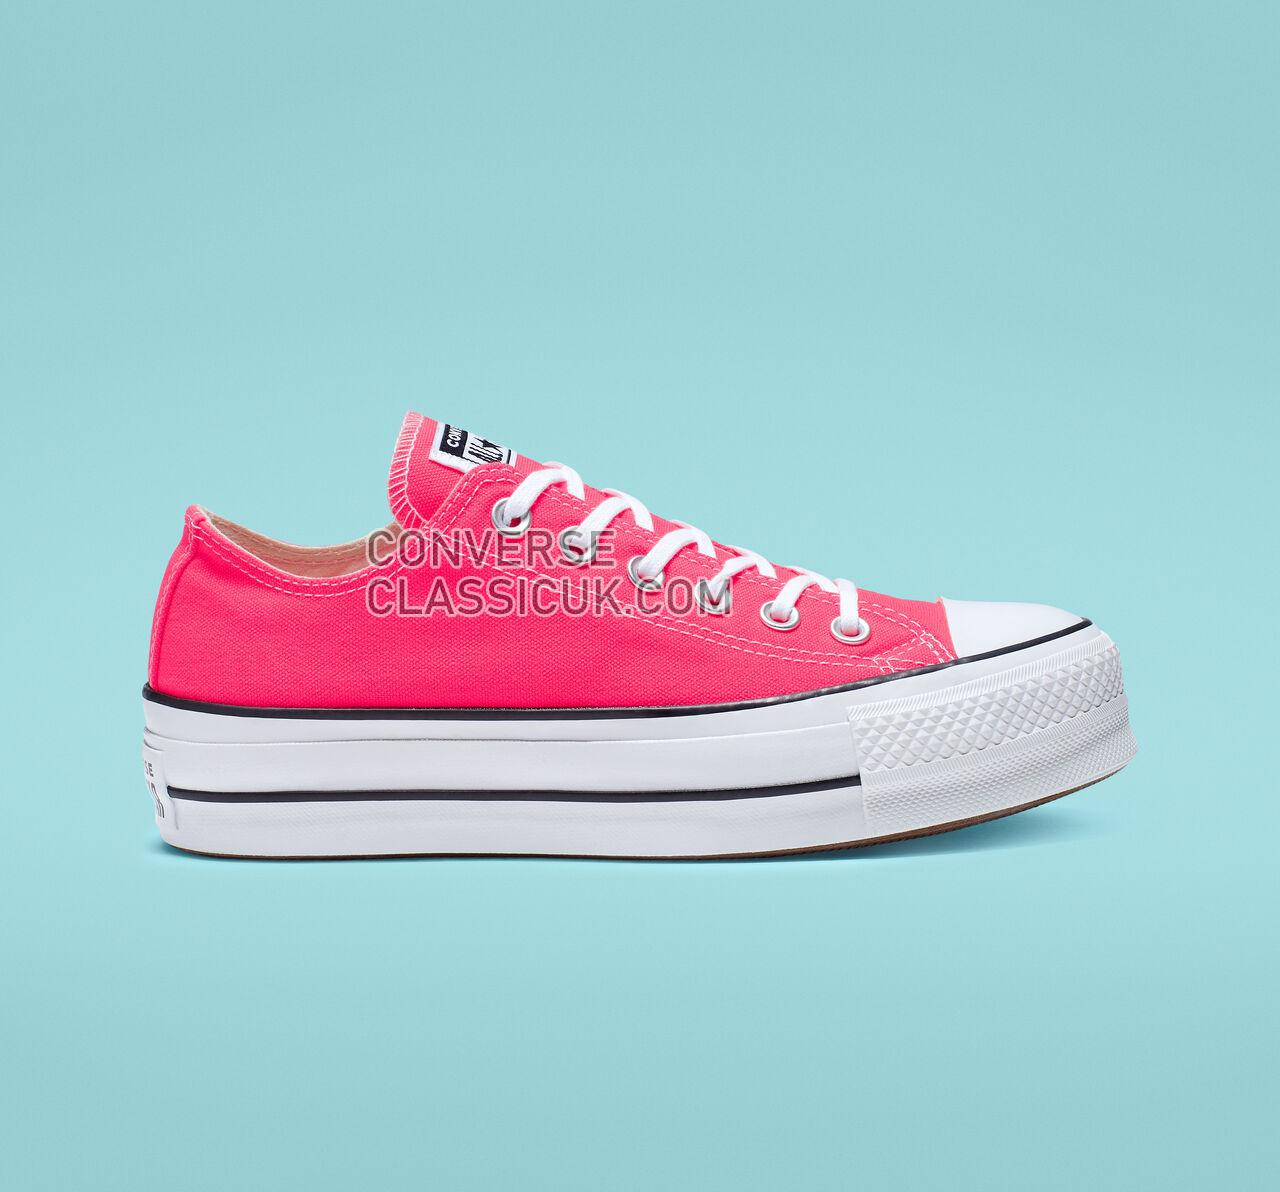 Converse Chuck Taylor All Star Clean Platform Low Top Womens 565501C Racer Pink/White/Black Shoes